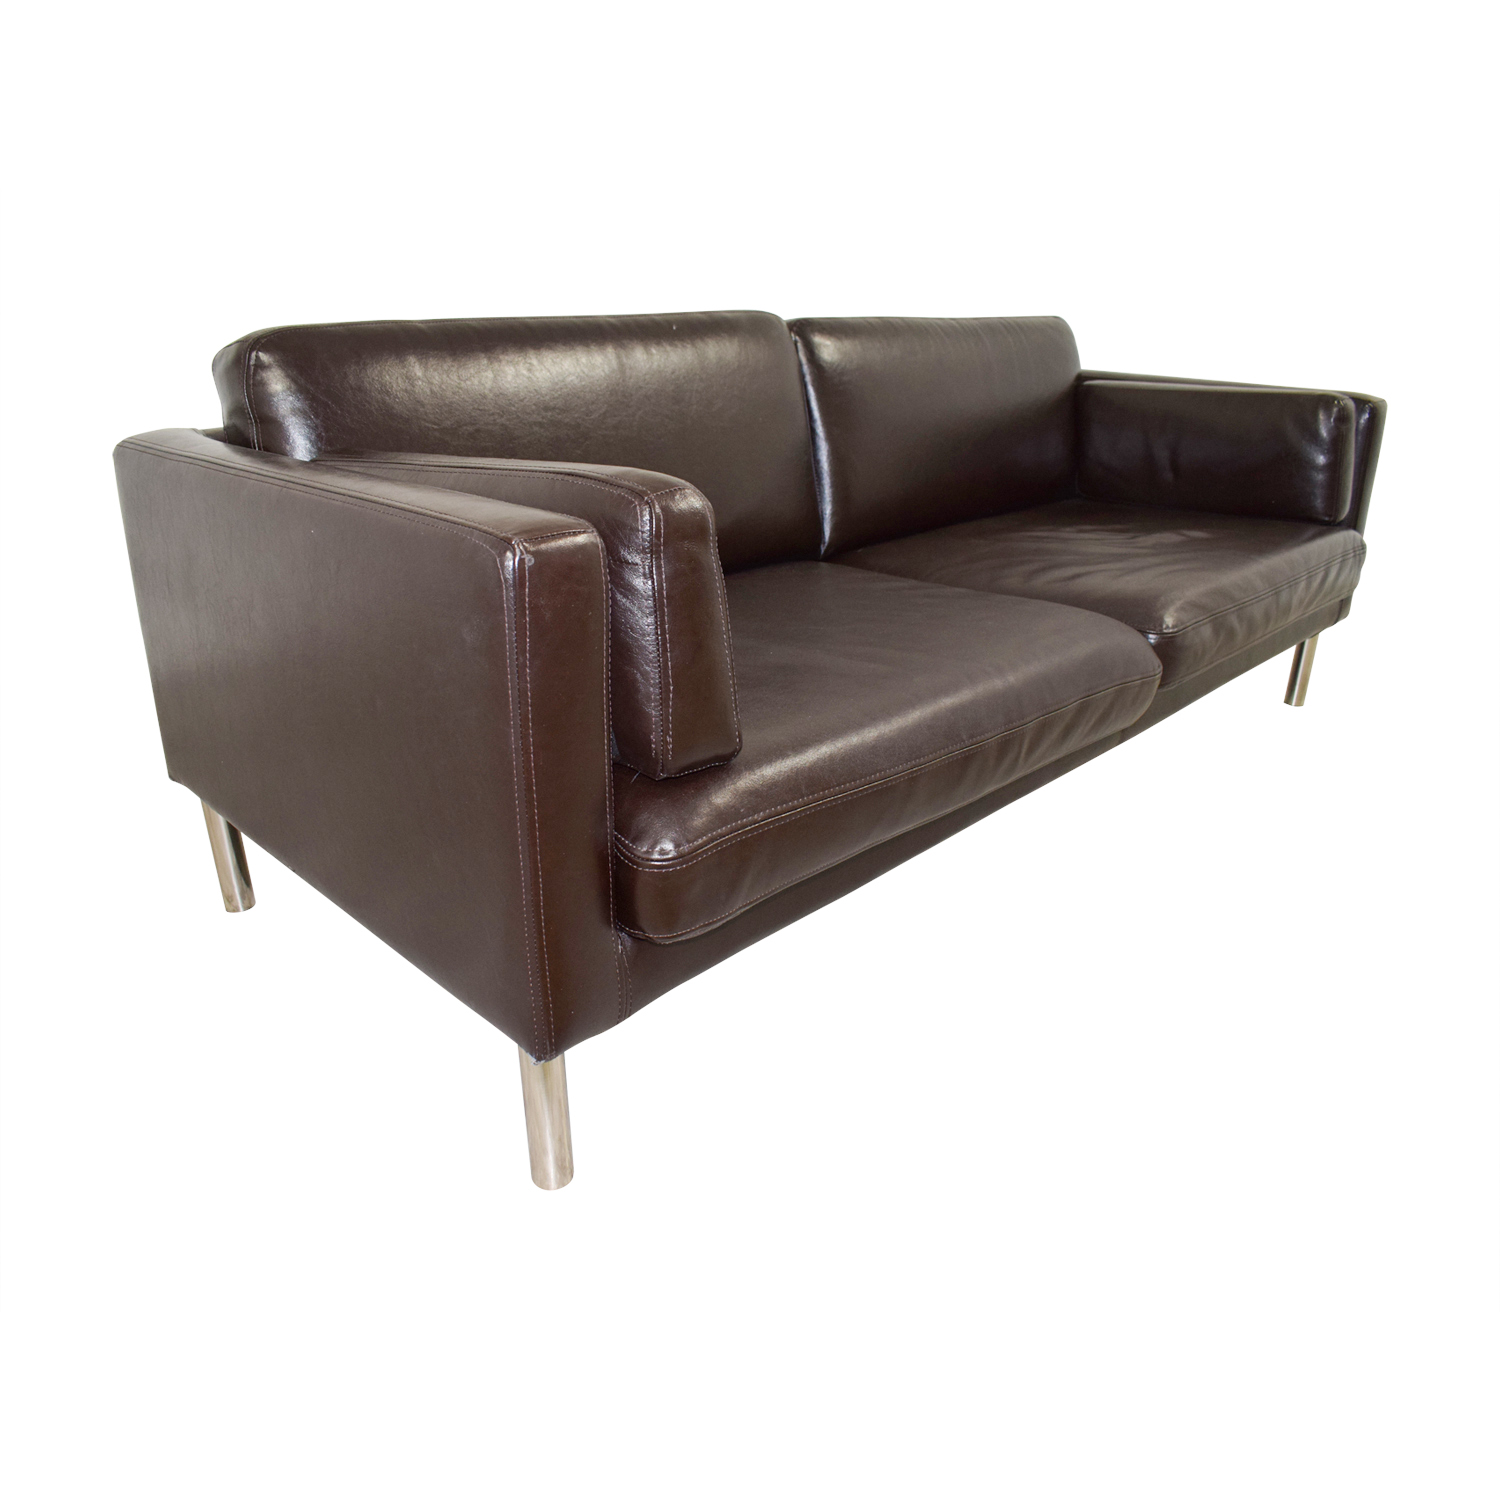 ikea sater sofa outdoor sectional sunbrella 54 off split leather sofas